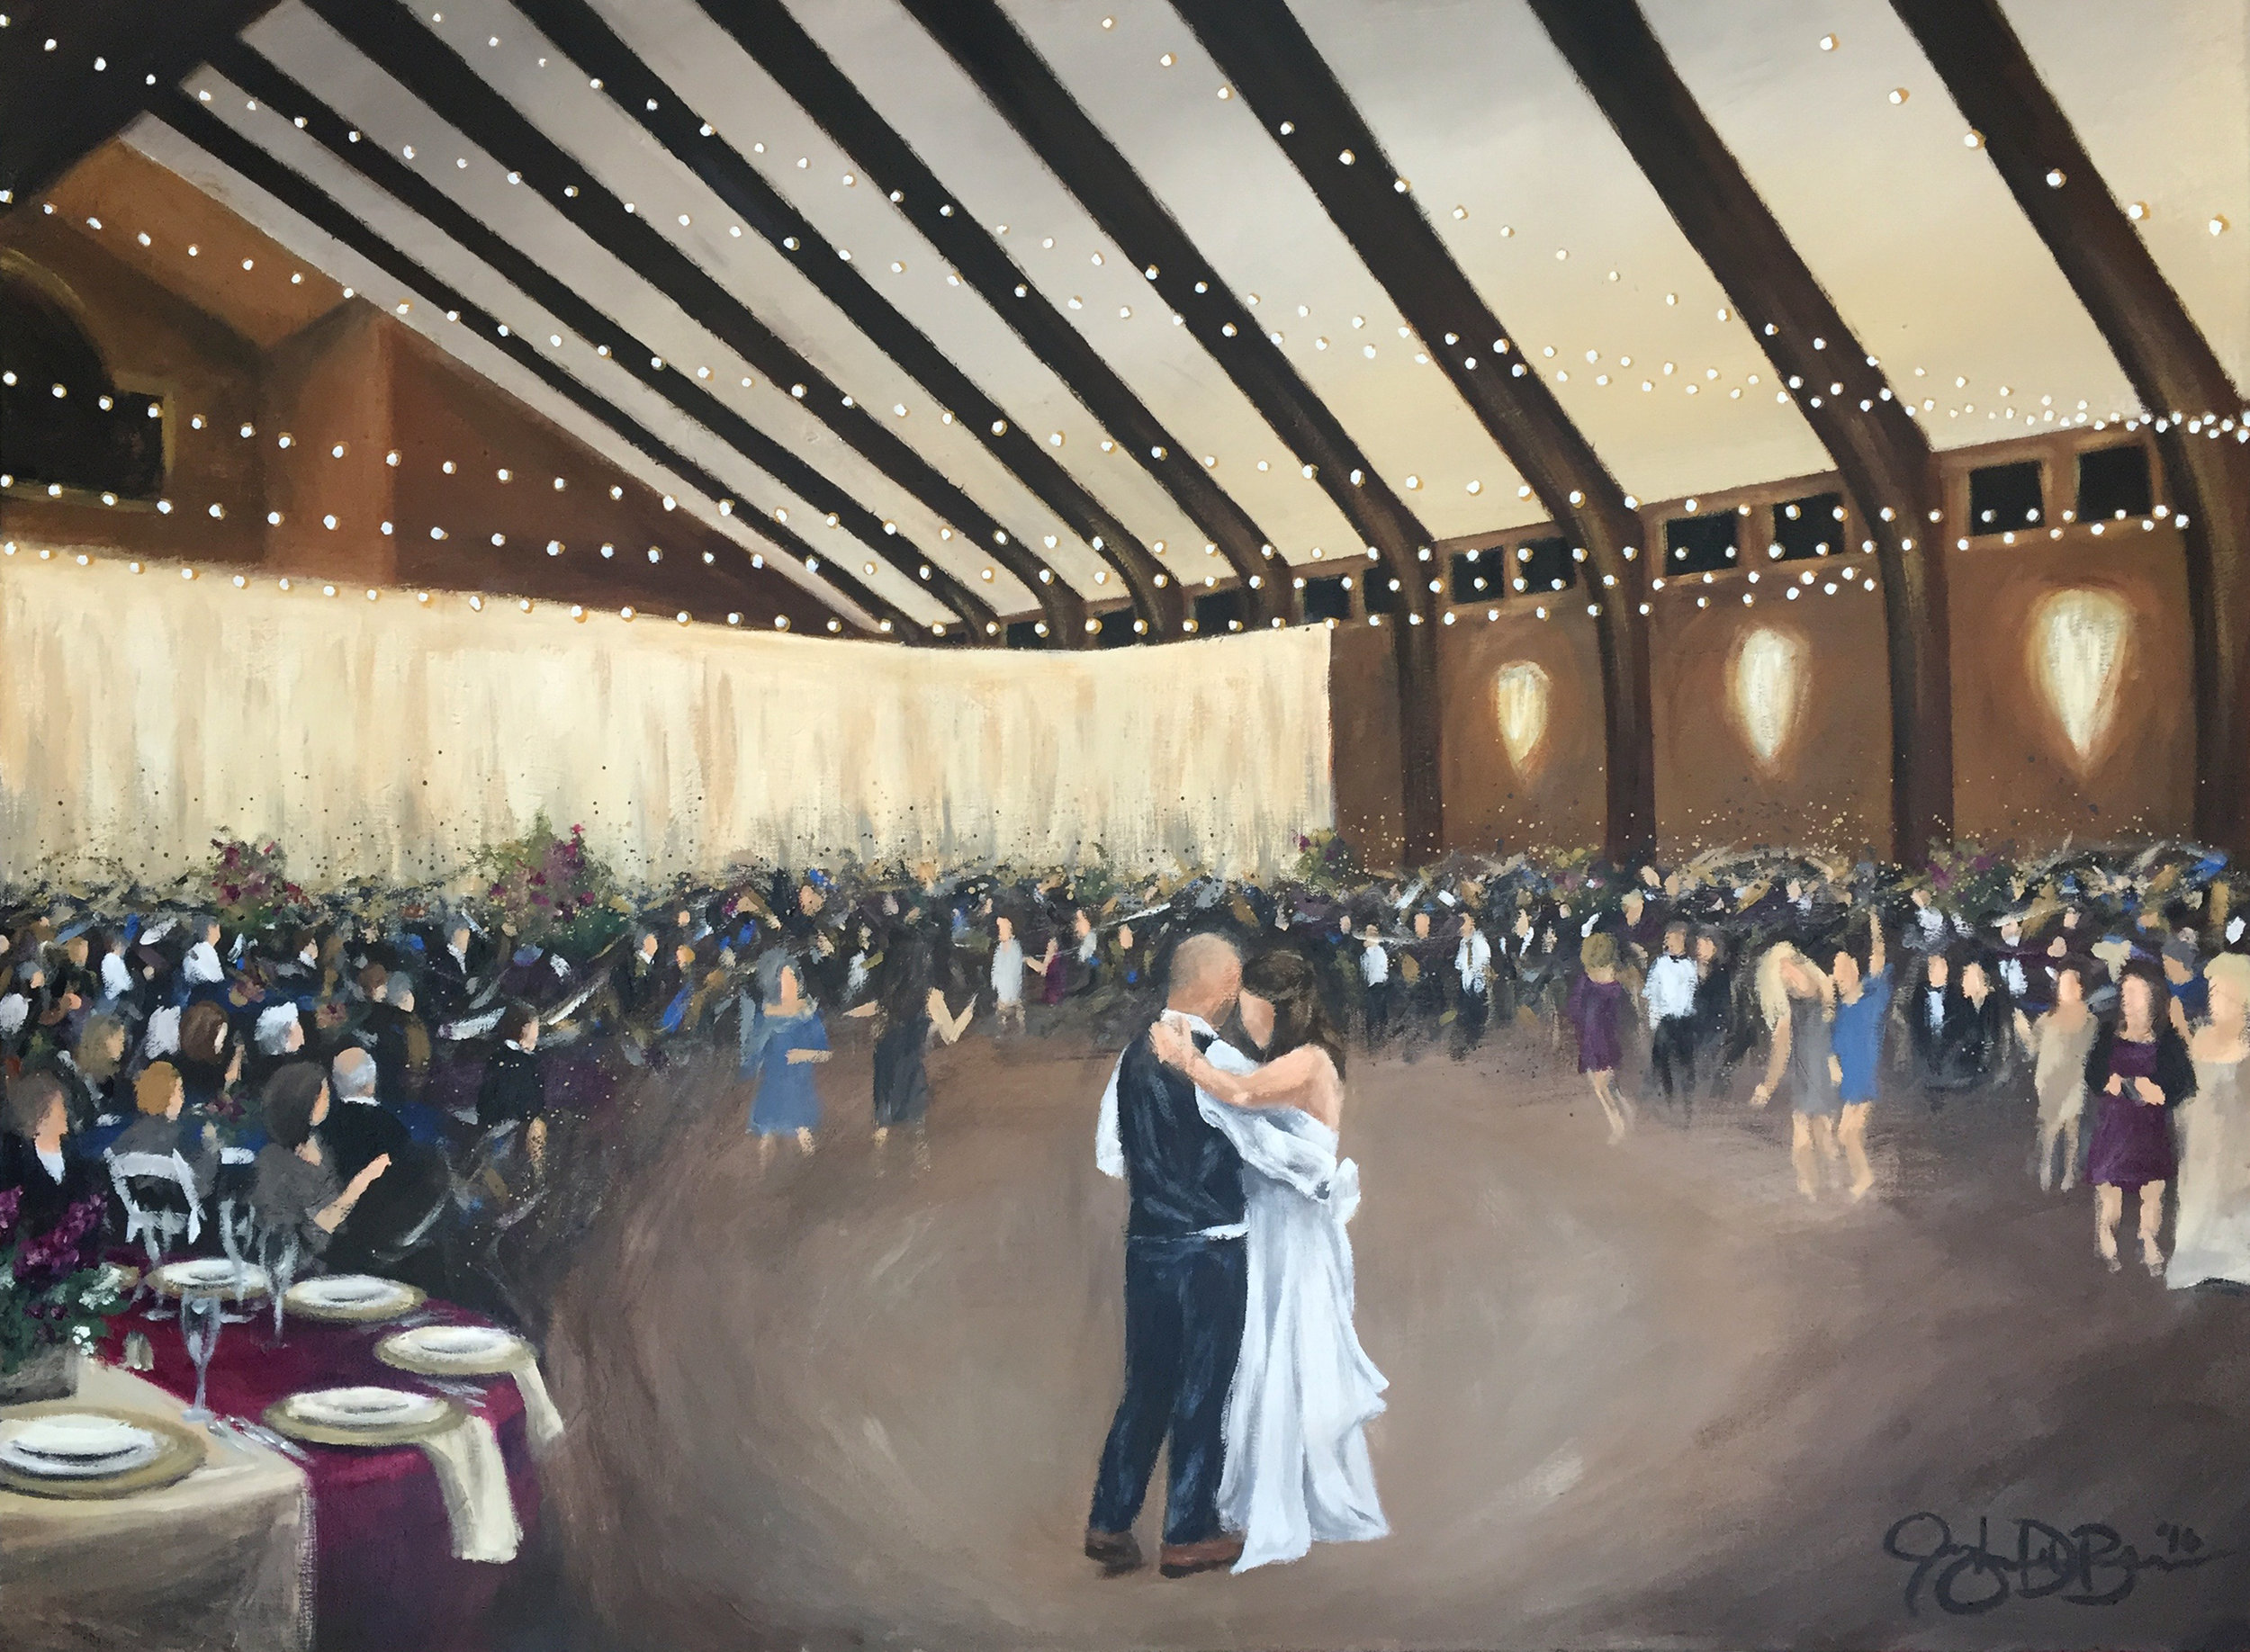 Live Wedding Painting // Irongate Equestrian Center // 36x48in acrylic on canvas //Cleveland Event Painter, Jacqueline DelBrocco